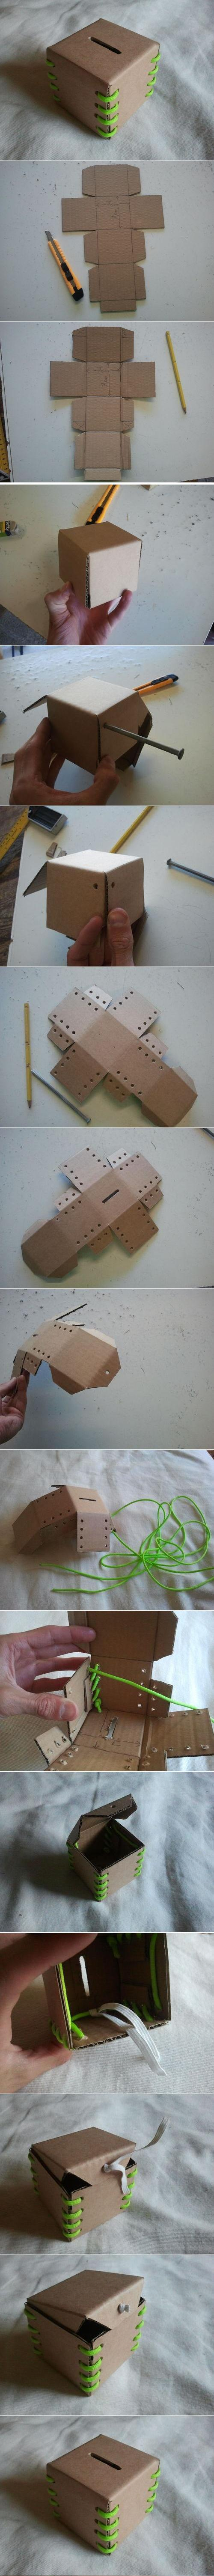 DIY Cardboard Piggy Bank DIY Projects | UsefulDIY.com